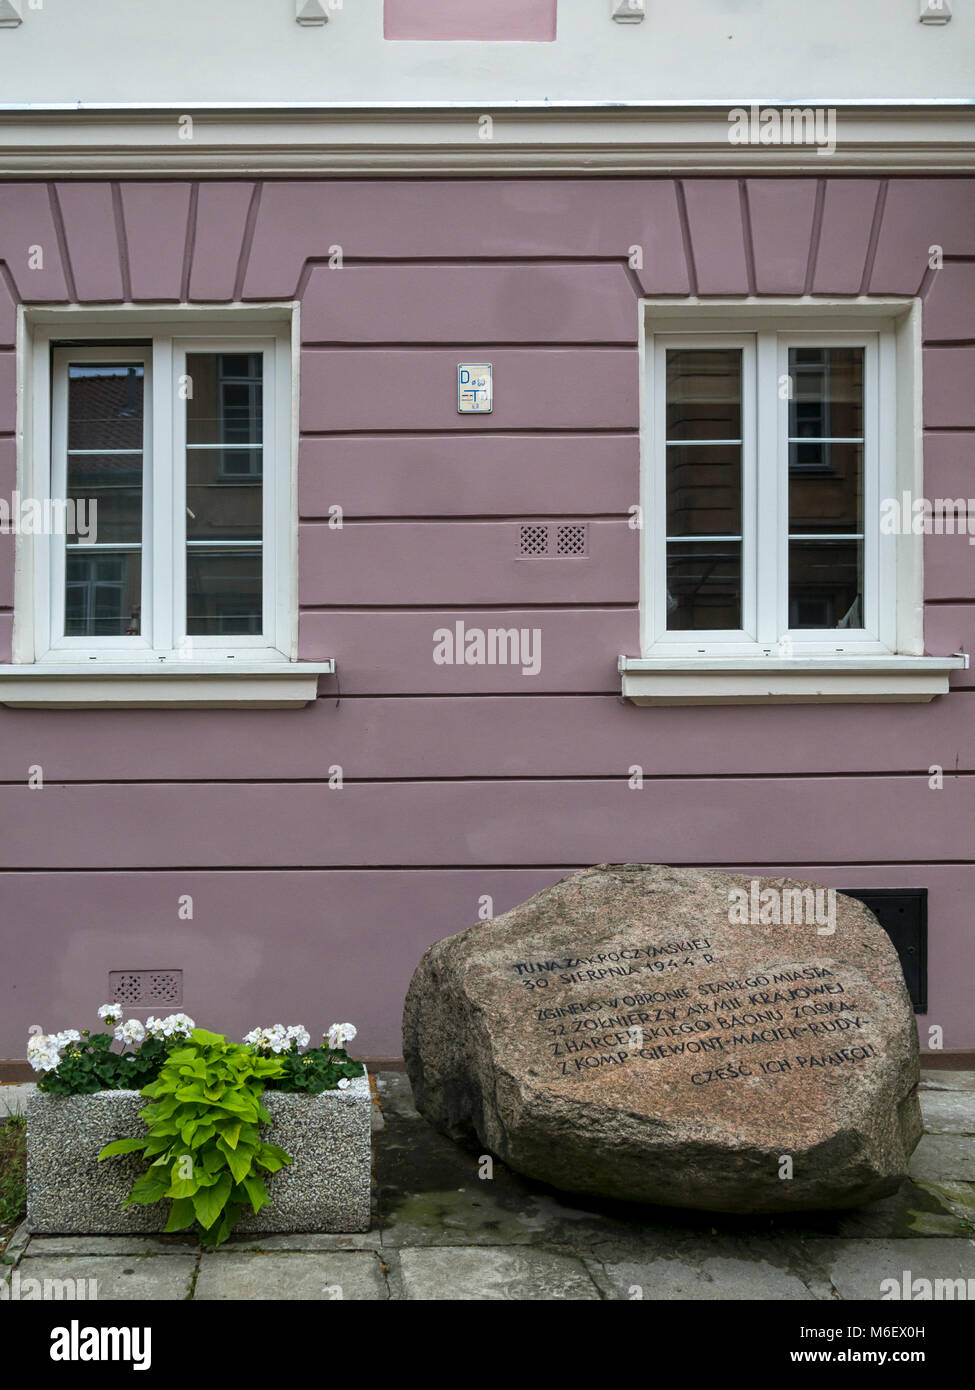 WARSAW, POLAND:  One of the many plaques which commemorate events during the Warsaw Uprising in 1944 during WW2 Stock Photo